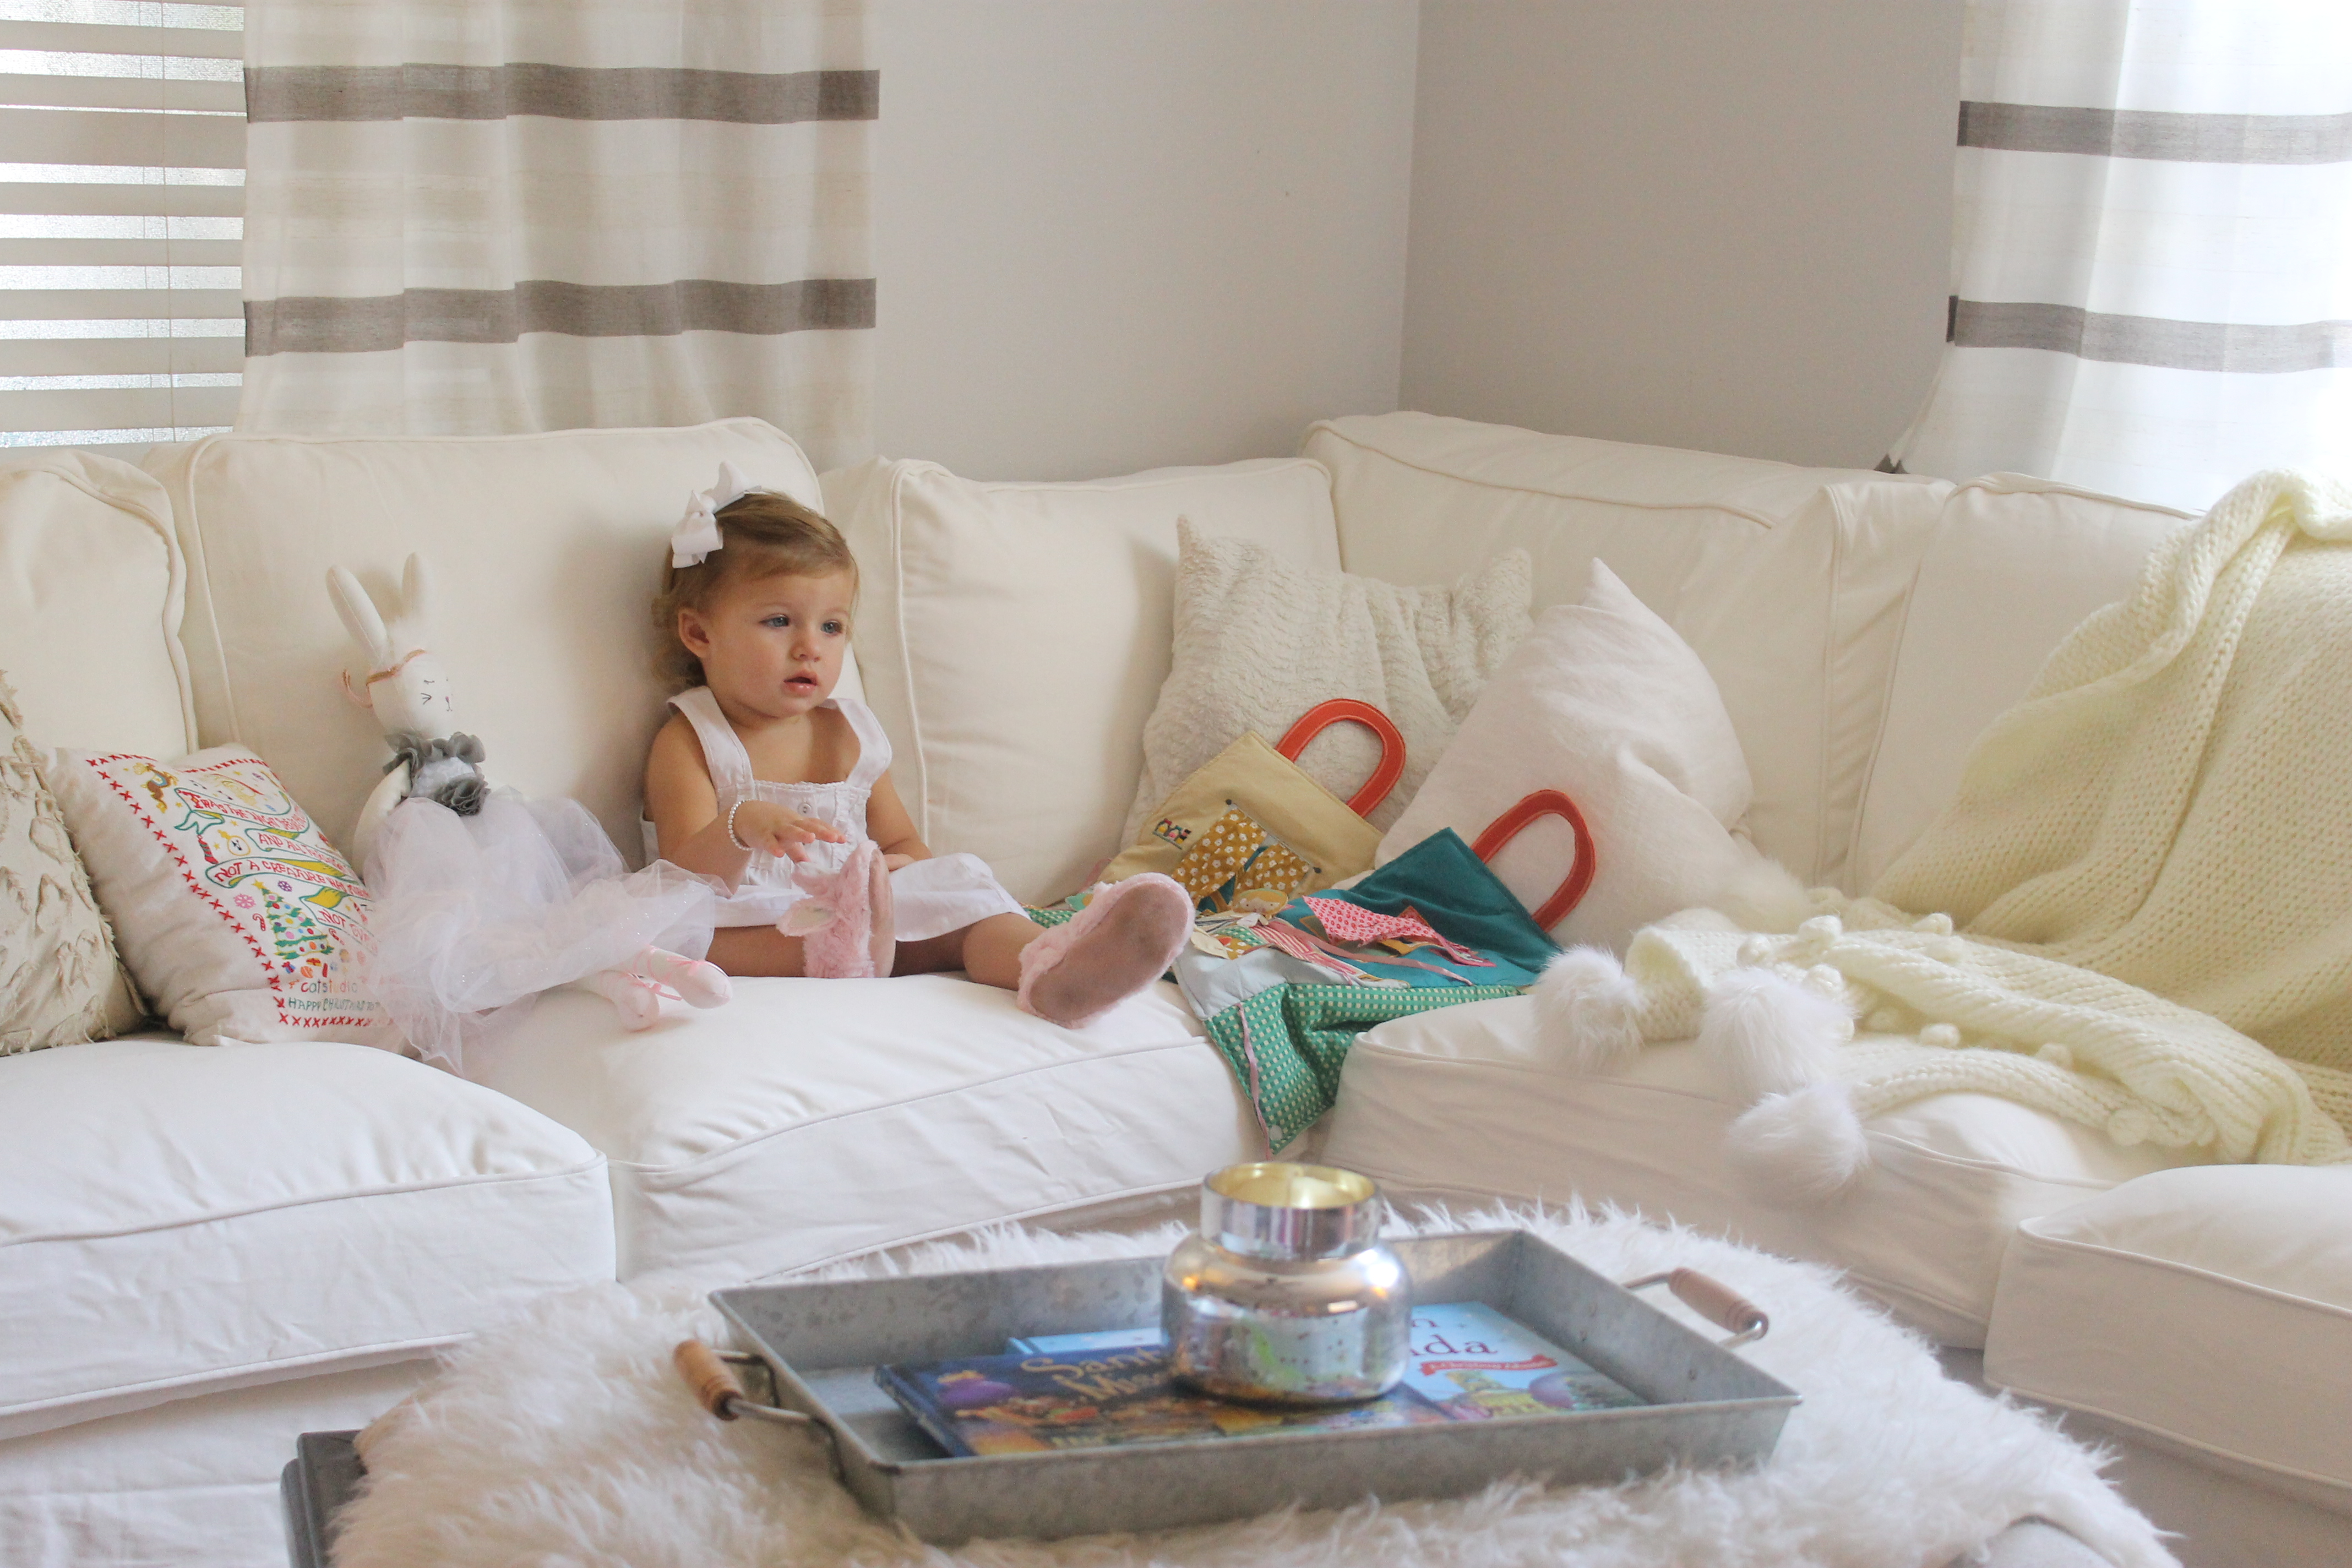 Groovy Honest Review Of A Messy Family And Their Ektorp Sofa My Pdpeps Interior Chair Design Pdpepsorg